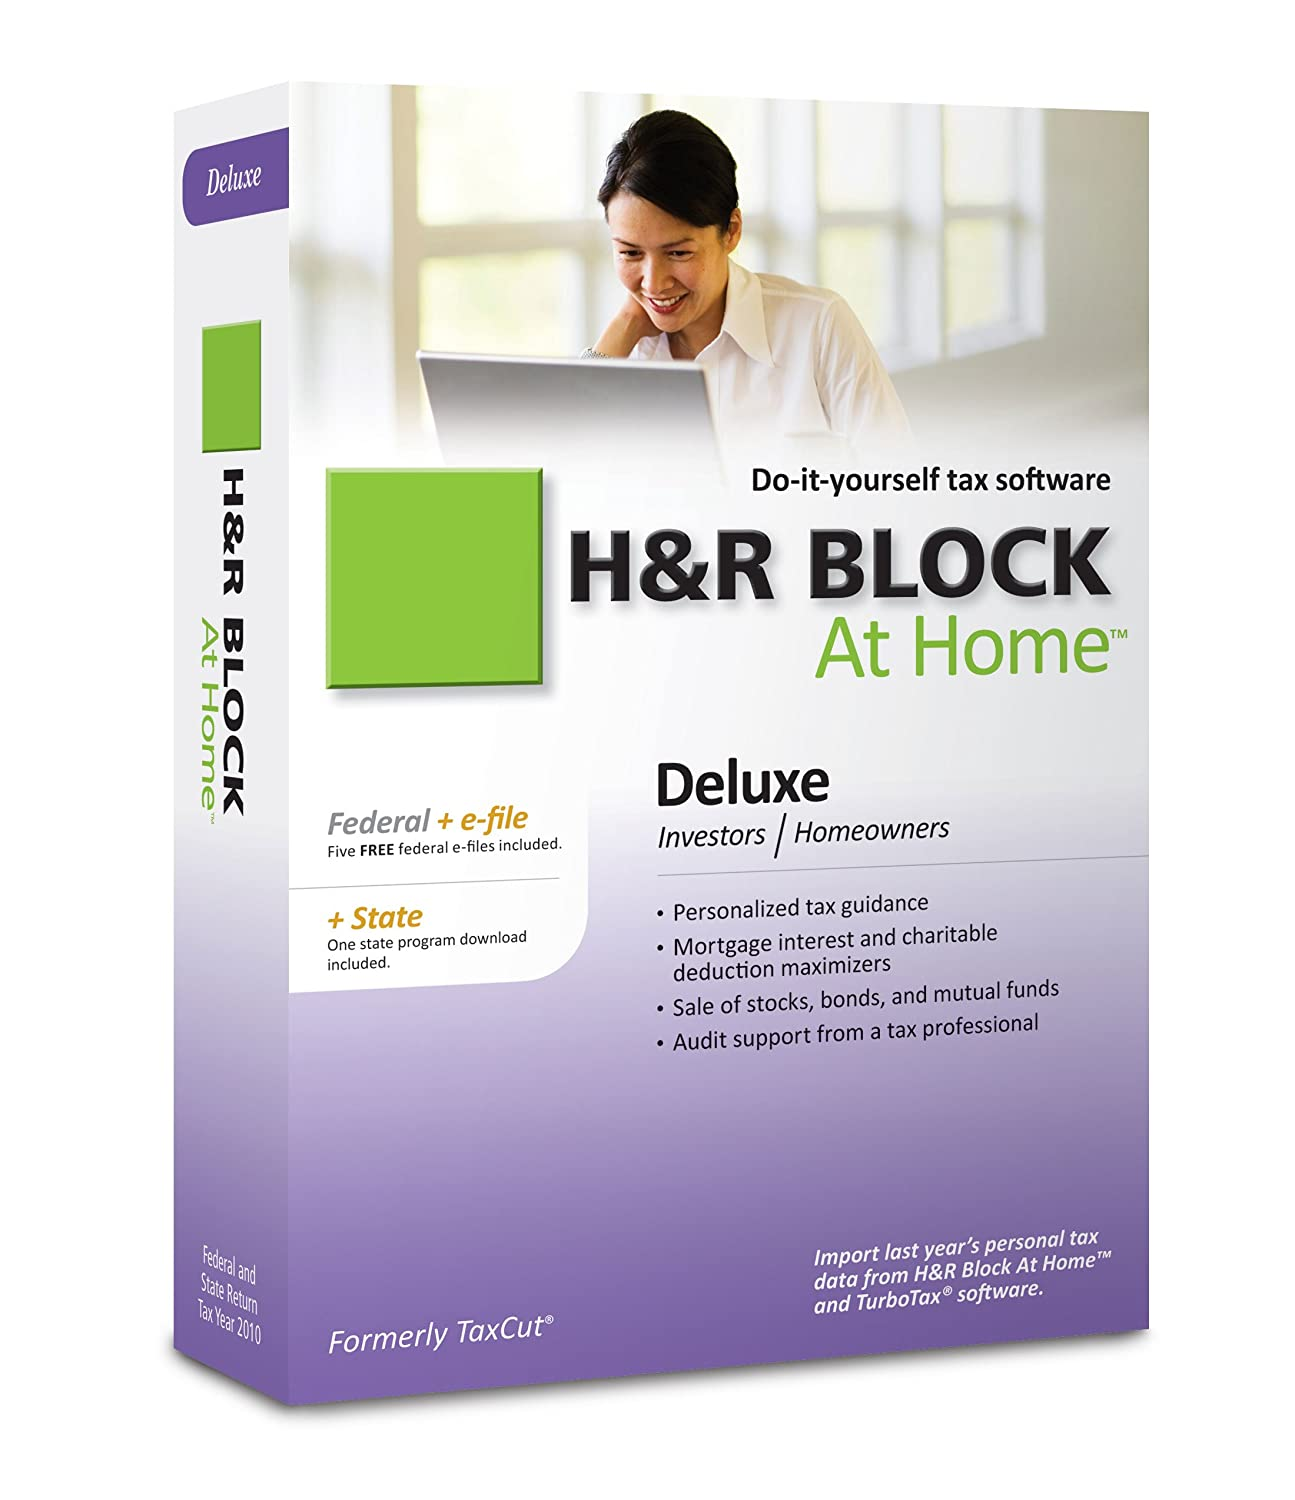 Bathroom specialists product gallery baths downloader - Amazon Com H R Block At Home 2010 Deluxe Federal State Efile Download Old Version Software